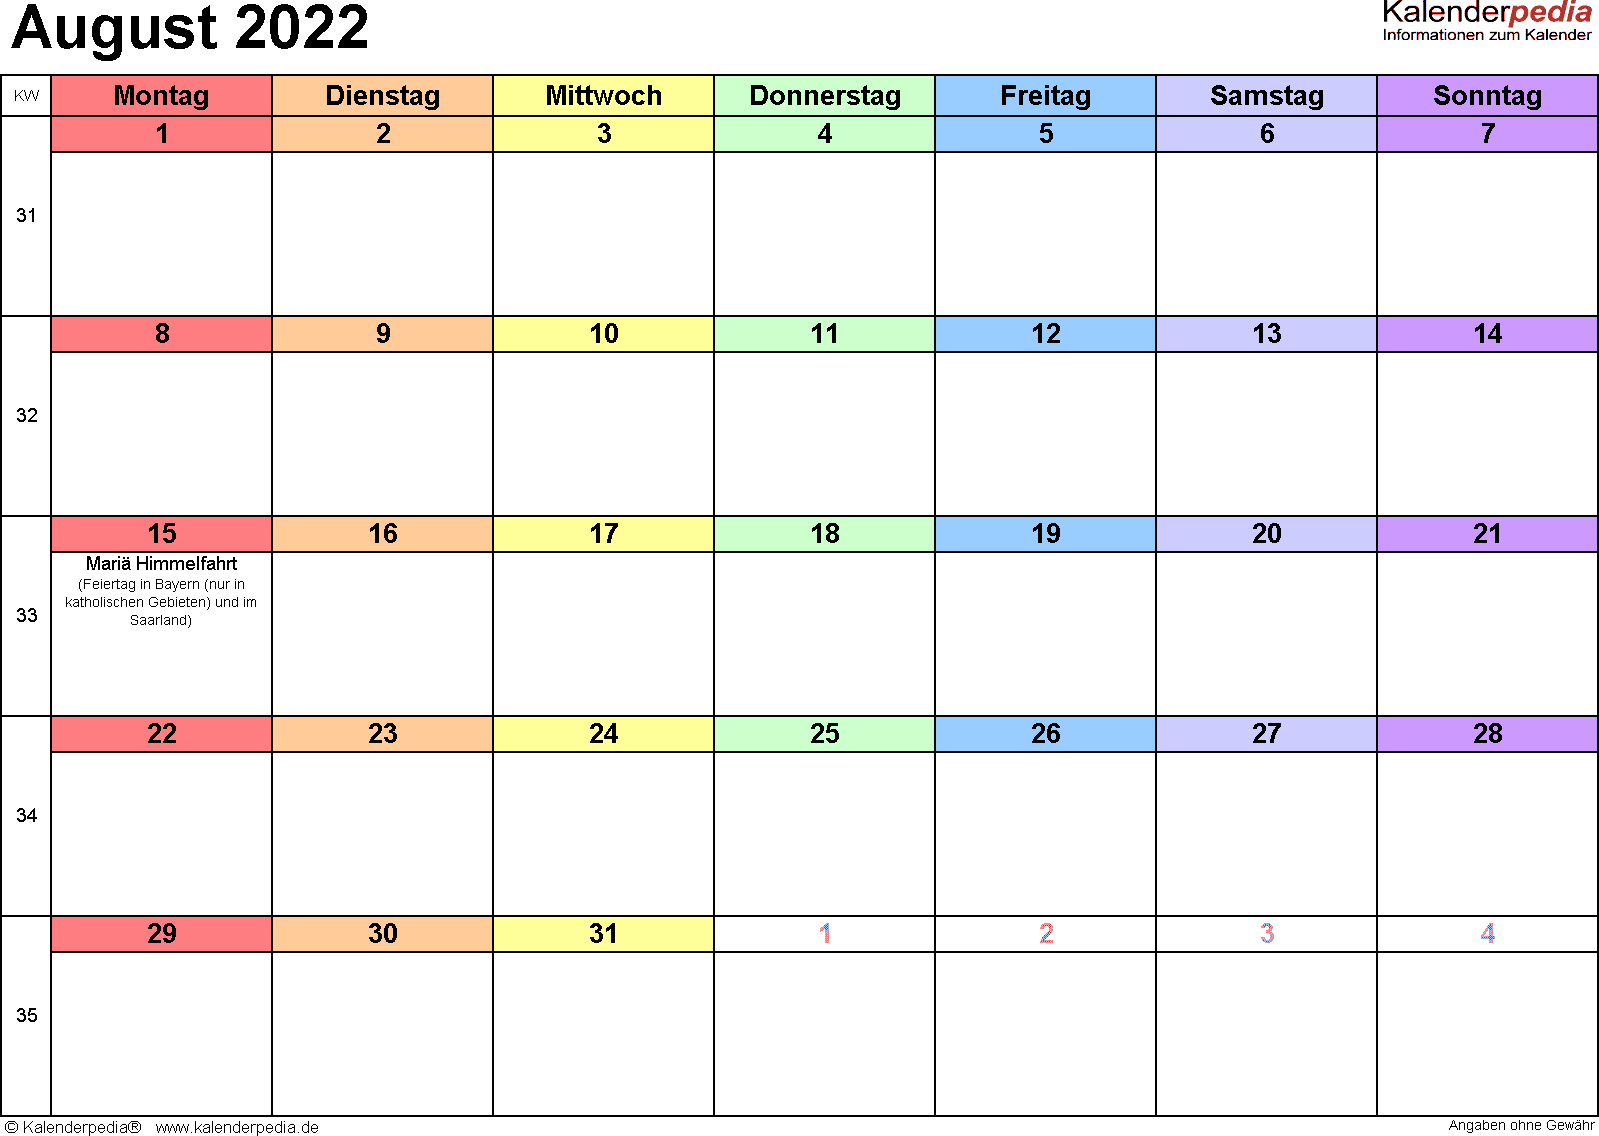 Kalender August 2022 (Querformat) als Word-Vorlage